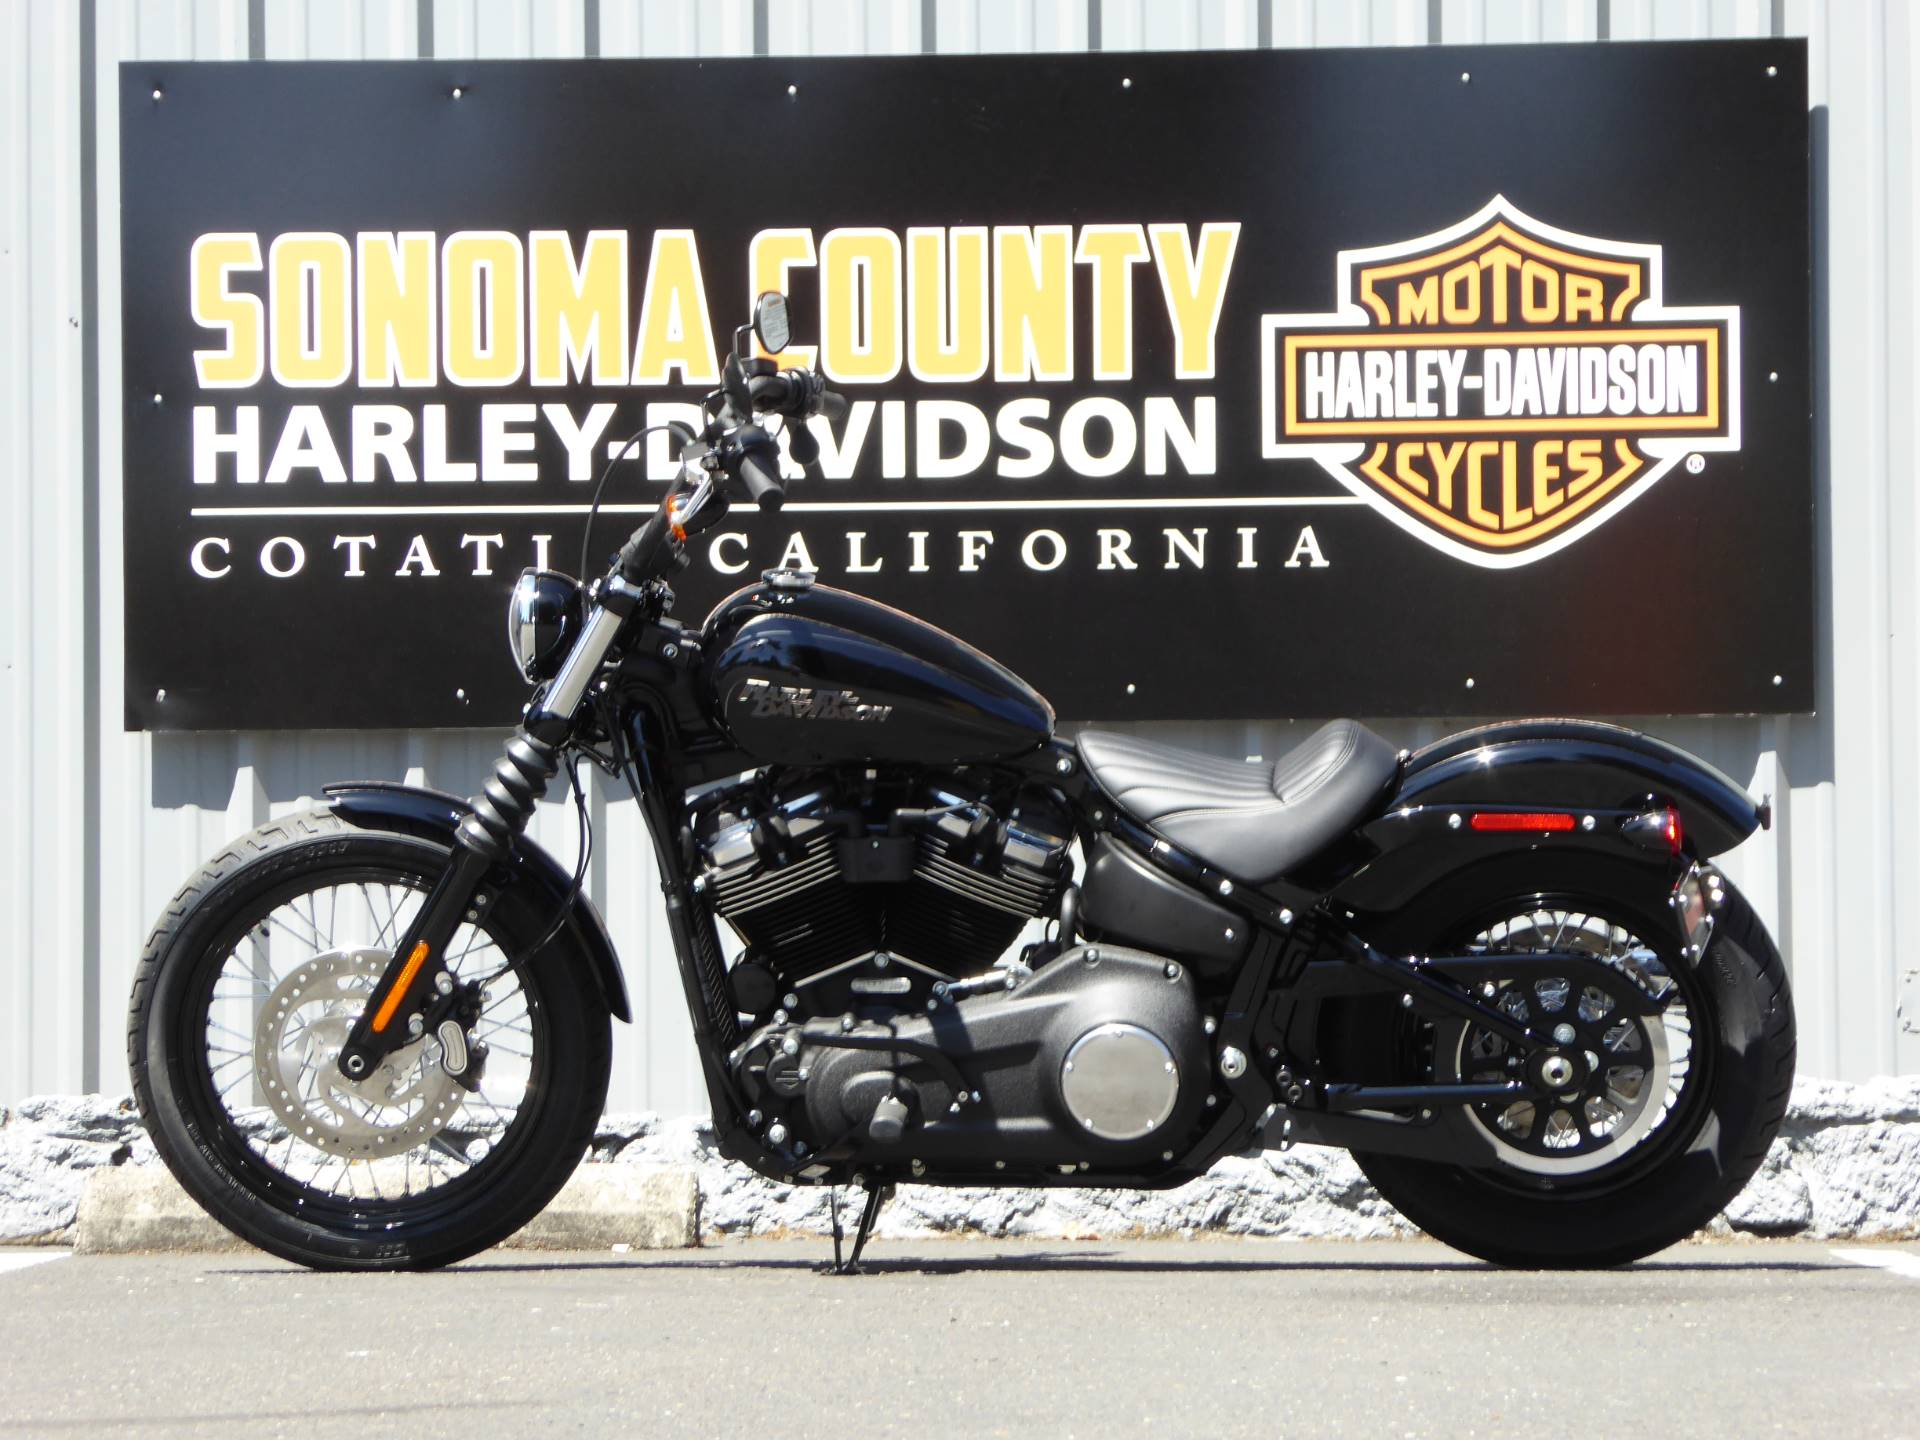 2020 Harley-Davidson FXBB Street Bob in Cotati, California - Photo 3